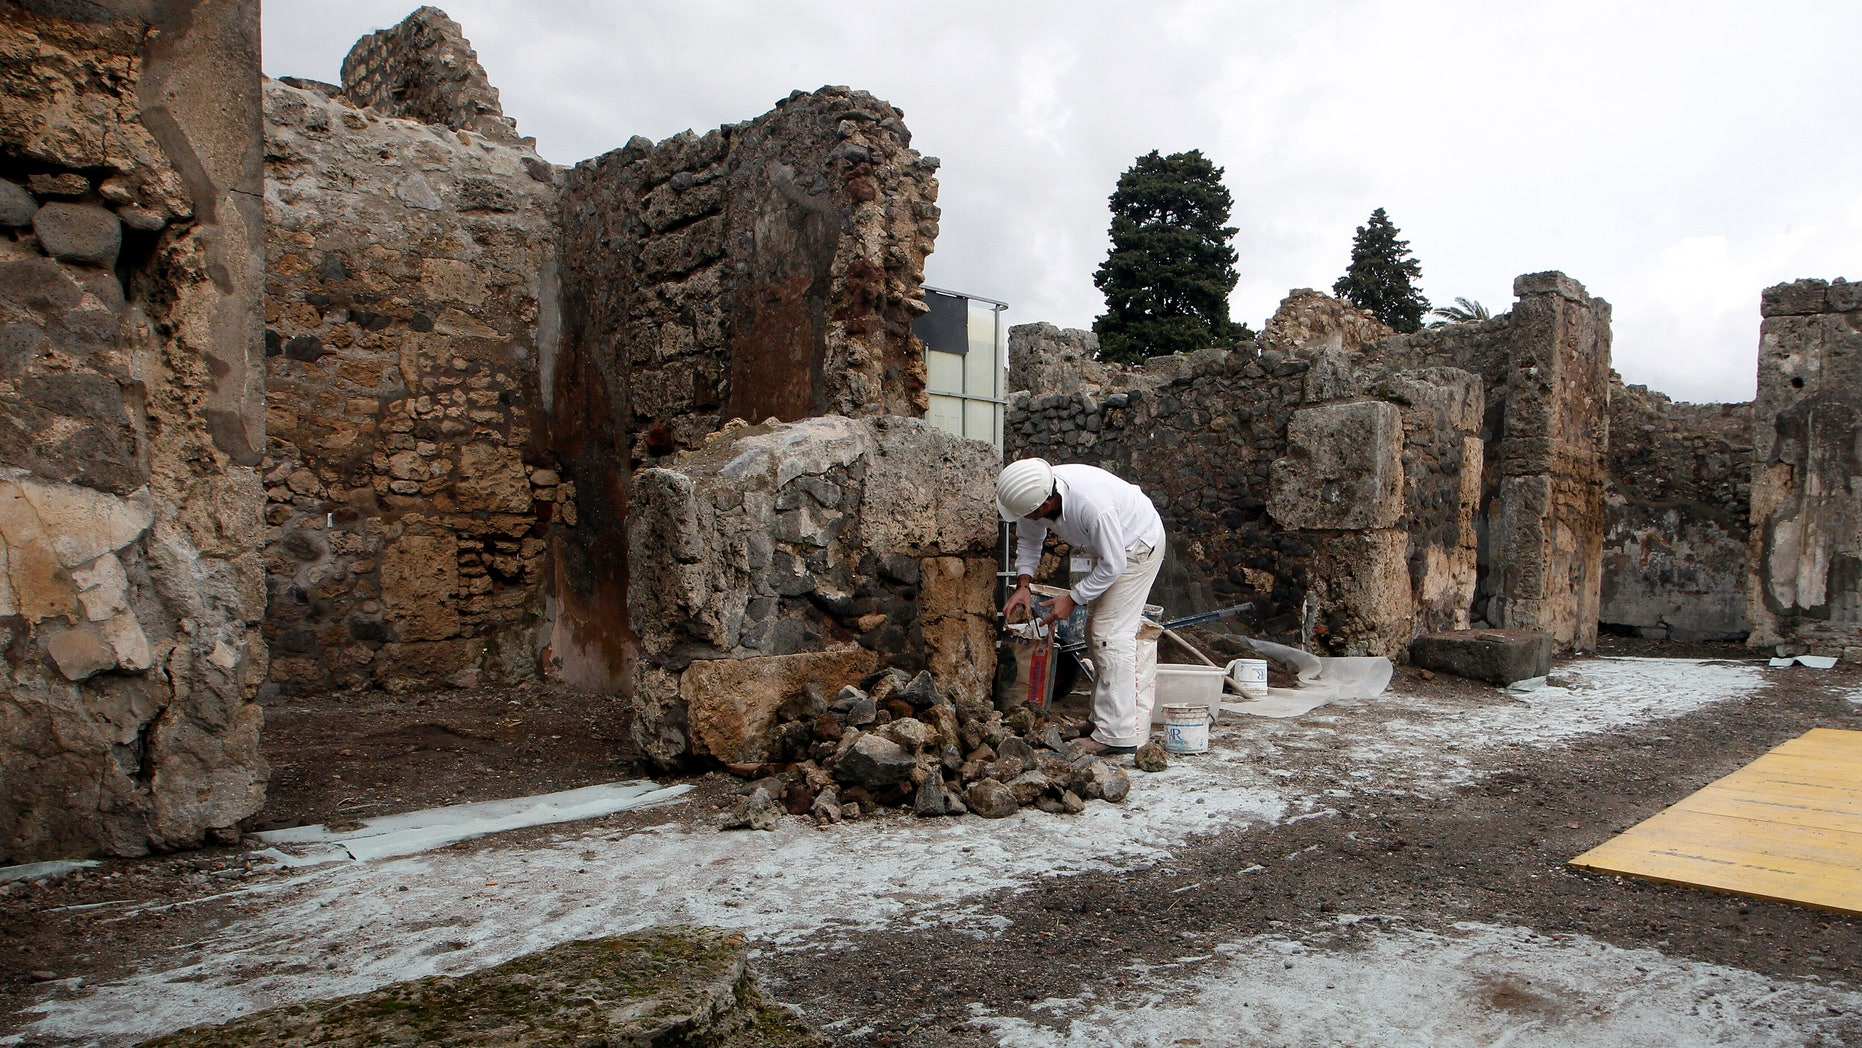 Feb. 6, 2013: A restorer works in the ancient Roman city Pompeii, which was buried in AD 79 by an eruption of the Vesuvius volcano.